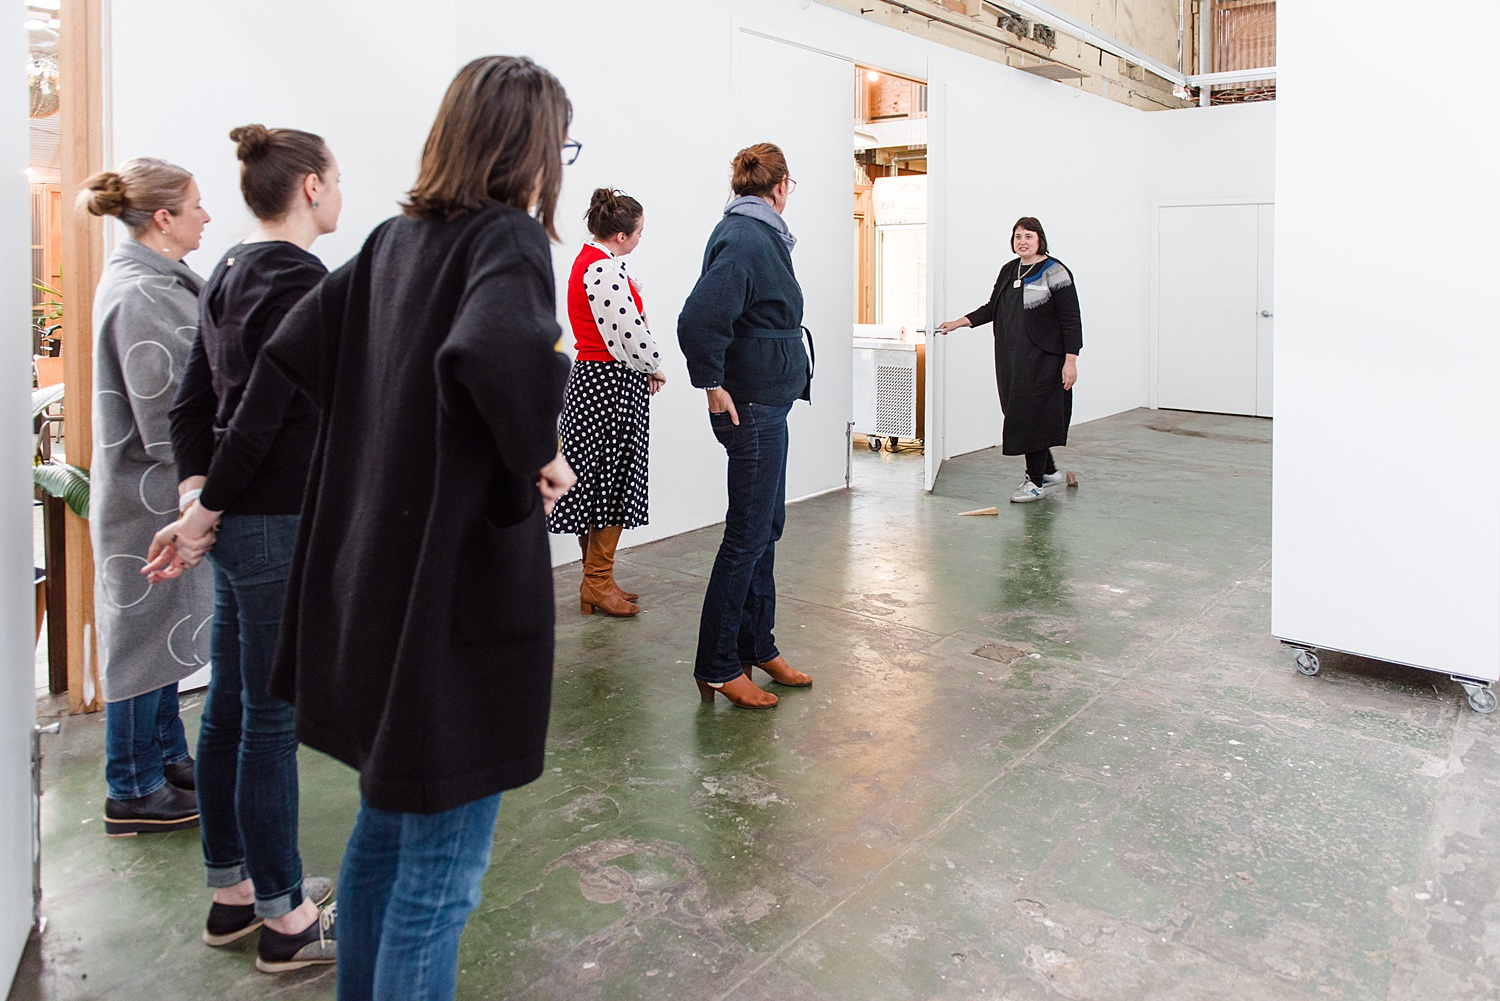 Members with mentor Jacqui Stockdale at member Q&A event discussing curation for the exhibition. SUN 28 JUL 2019  Image by: Samara Clifford